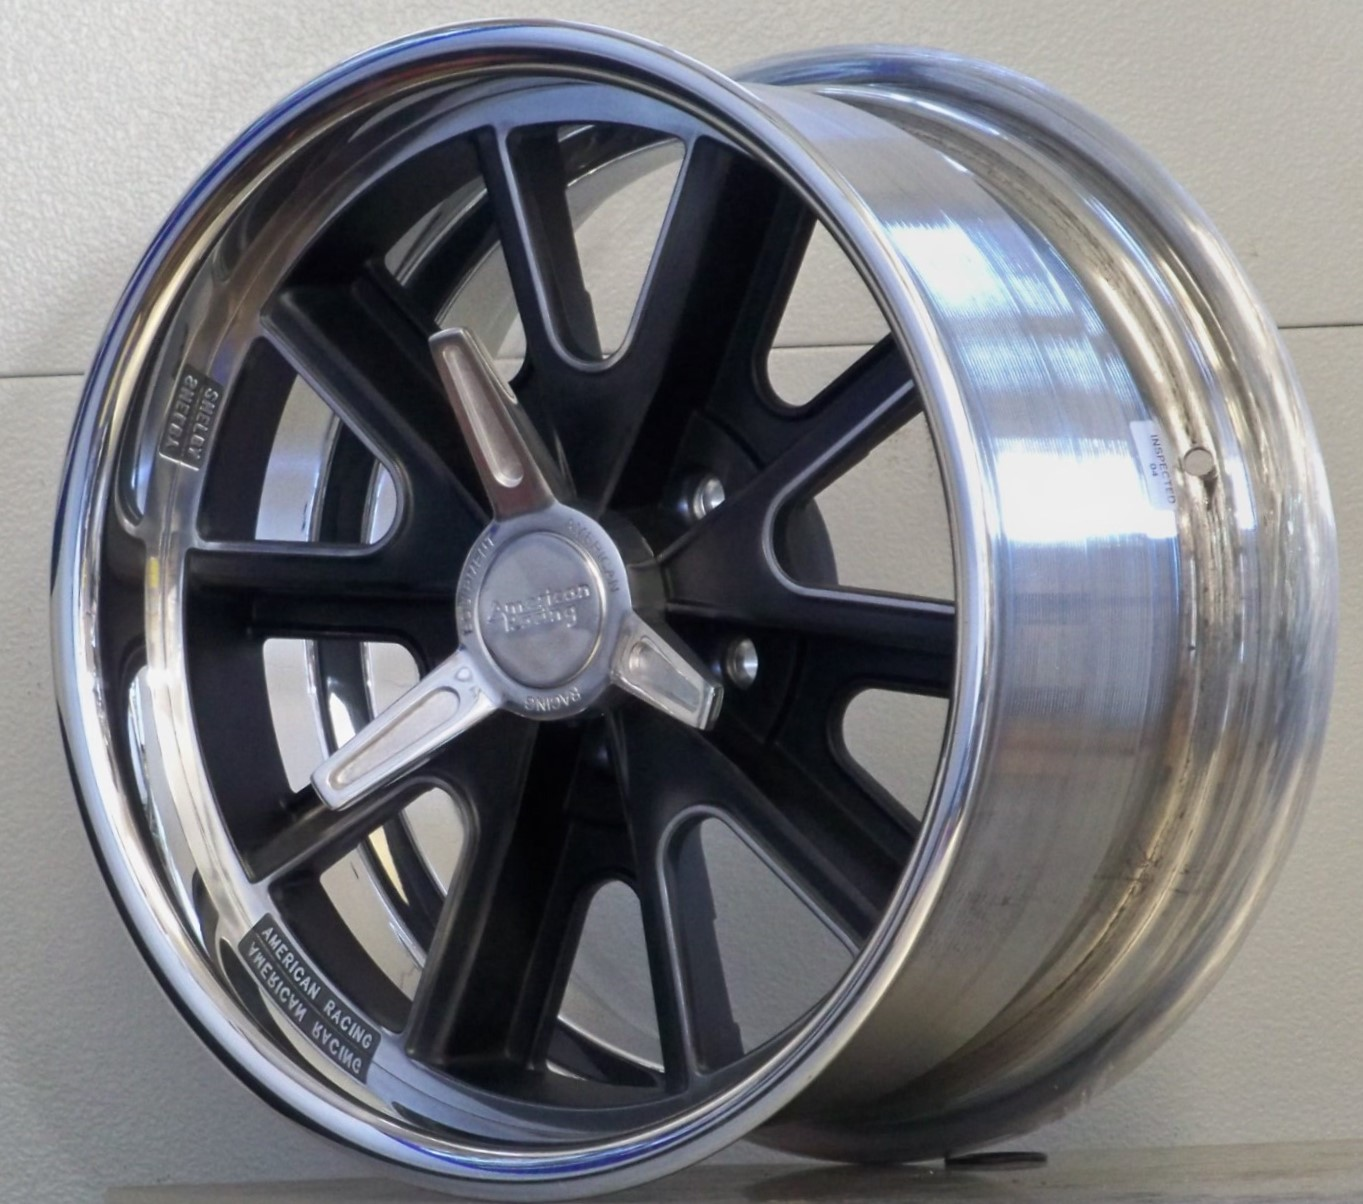 18s 407SSP black custom centers set of 4 05-20 Mustang